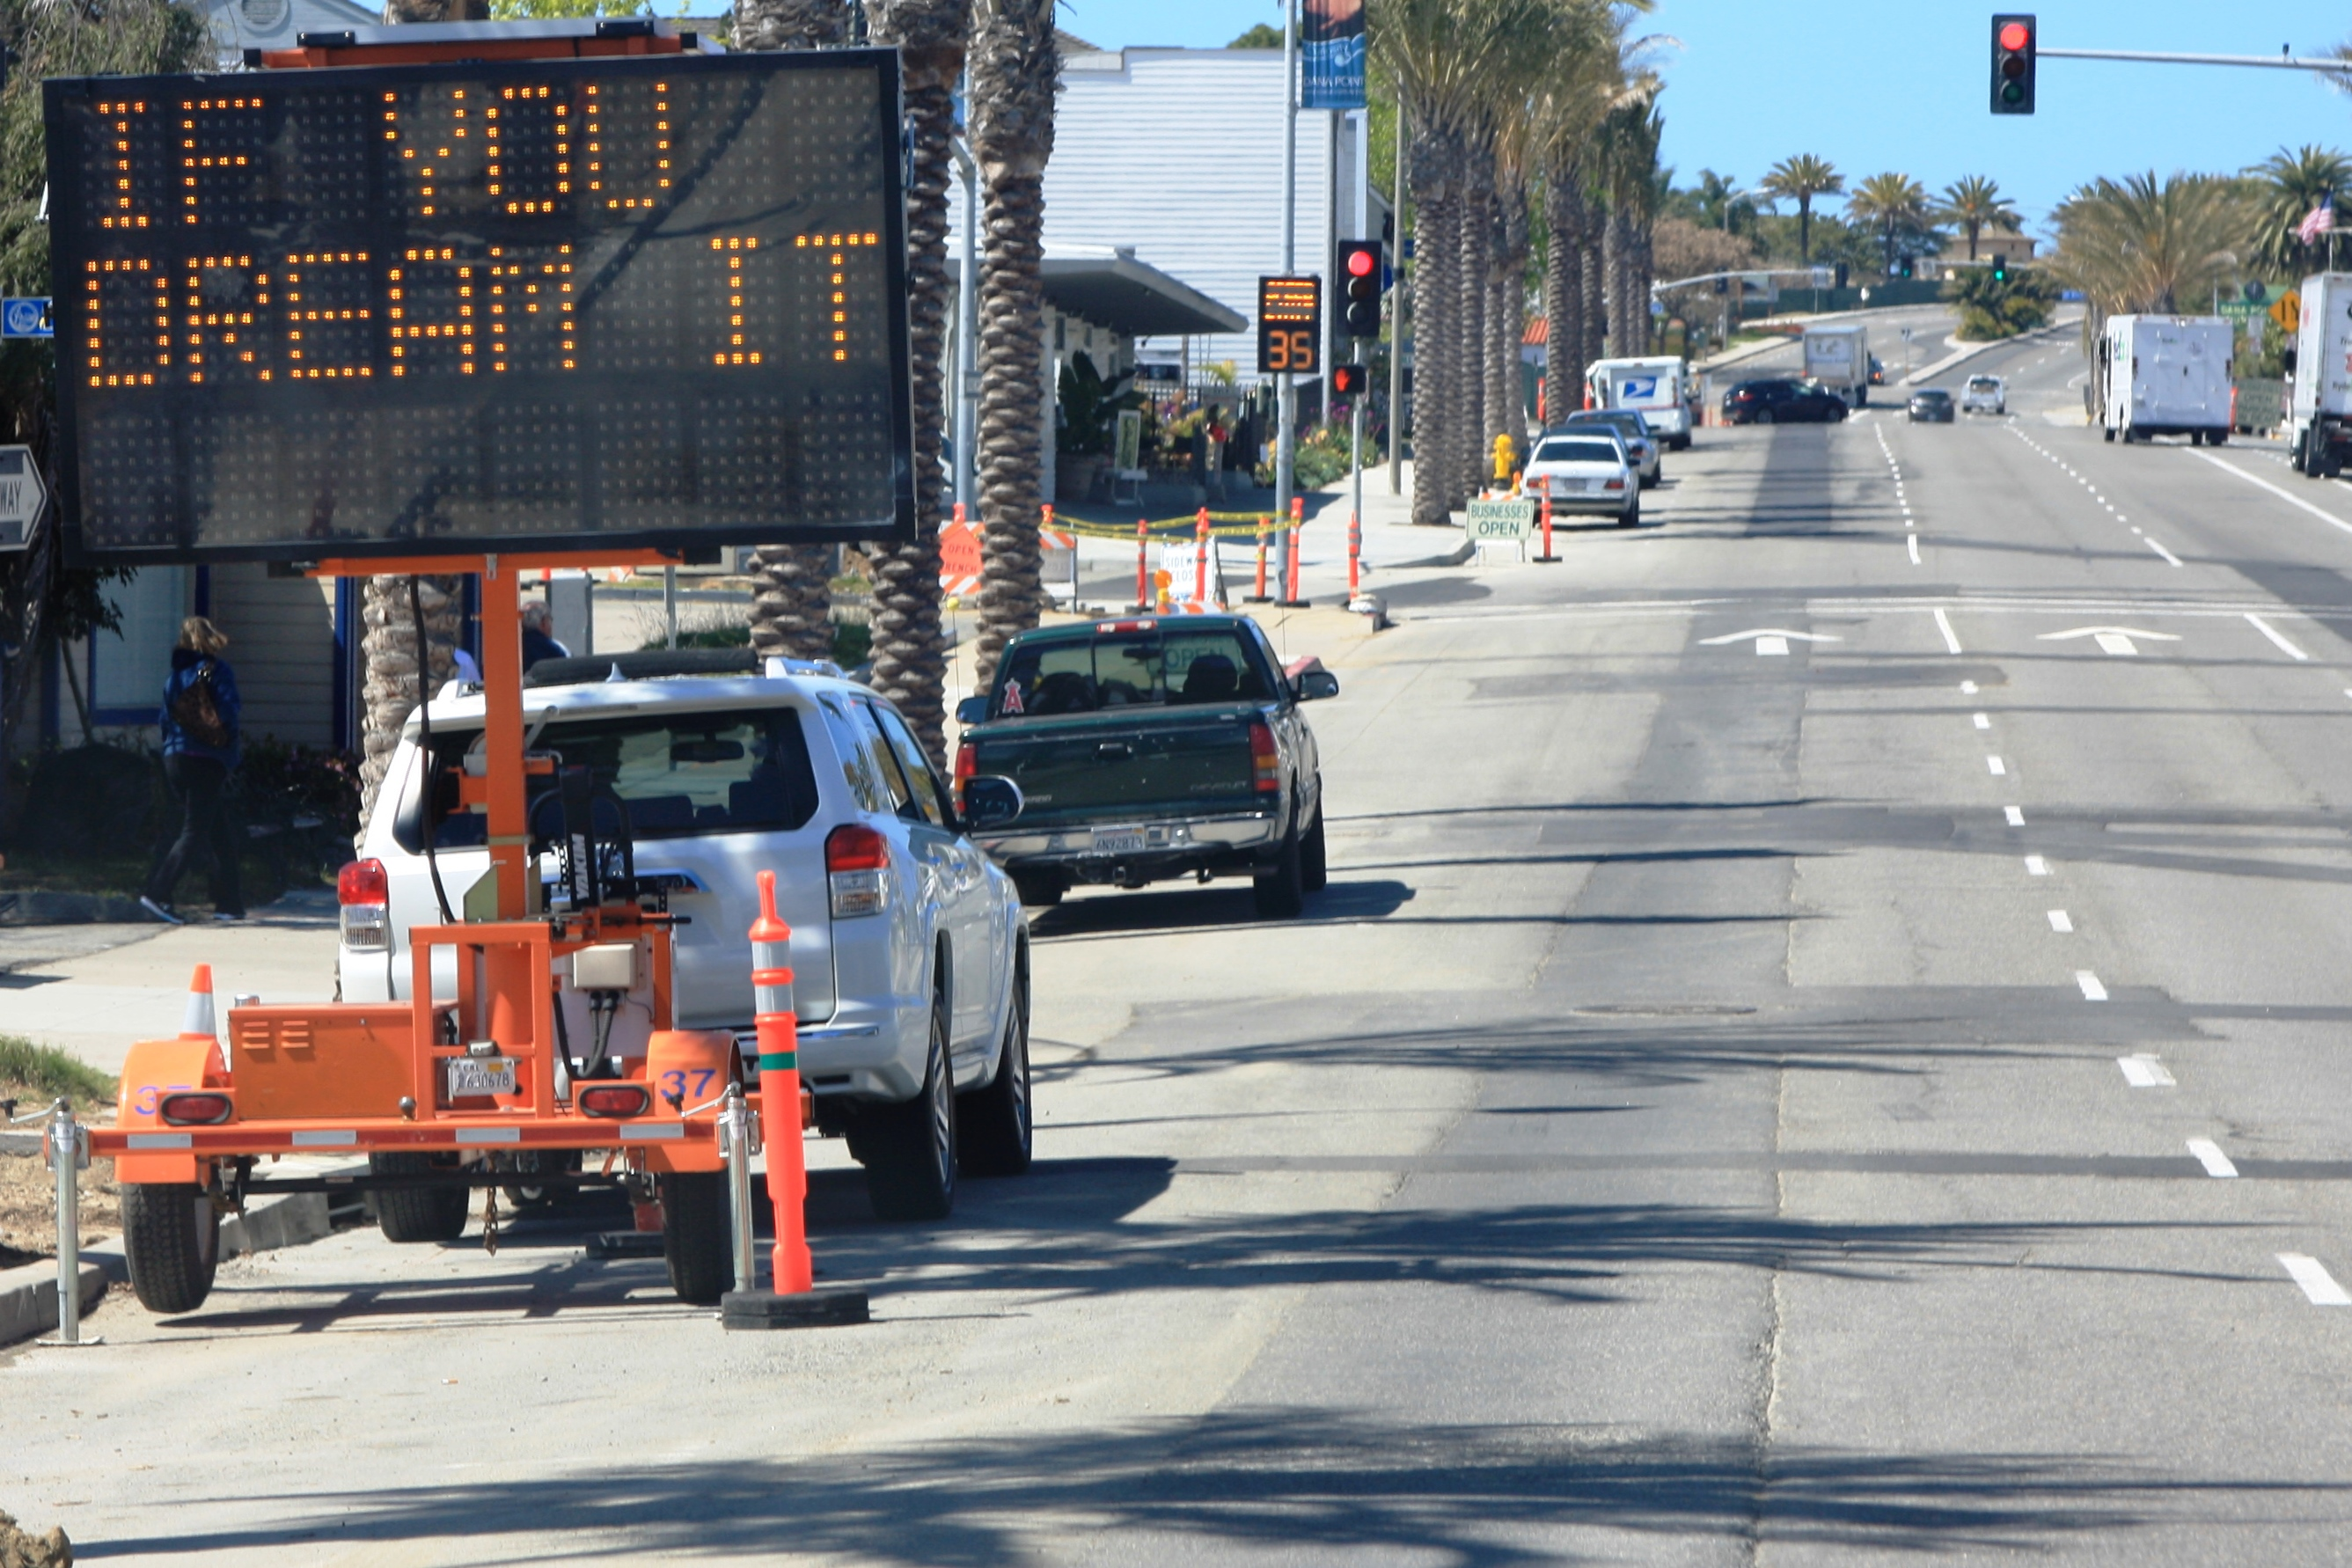 City staff has been placing humorous messages in with traffic and construction alerts to lighten a sometimes frustrating situation for drivers. Photo: Andrea Swayne